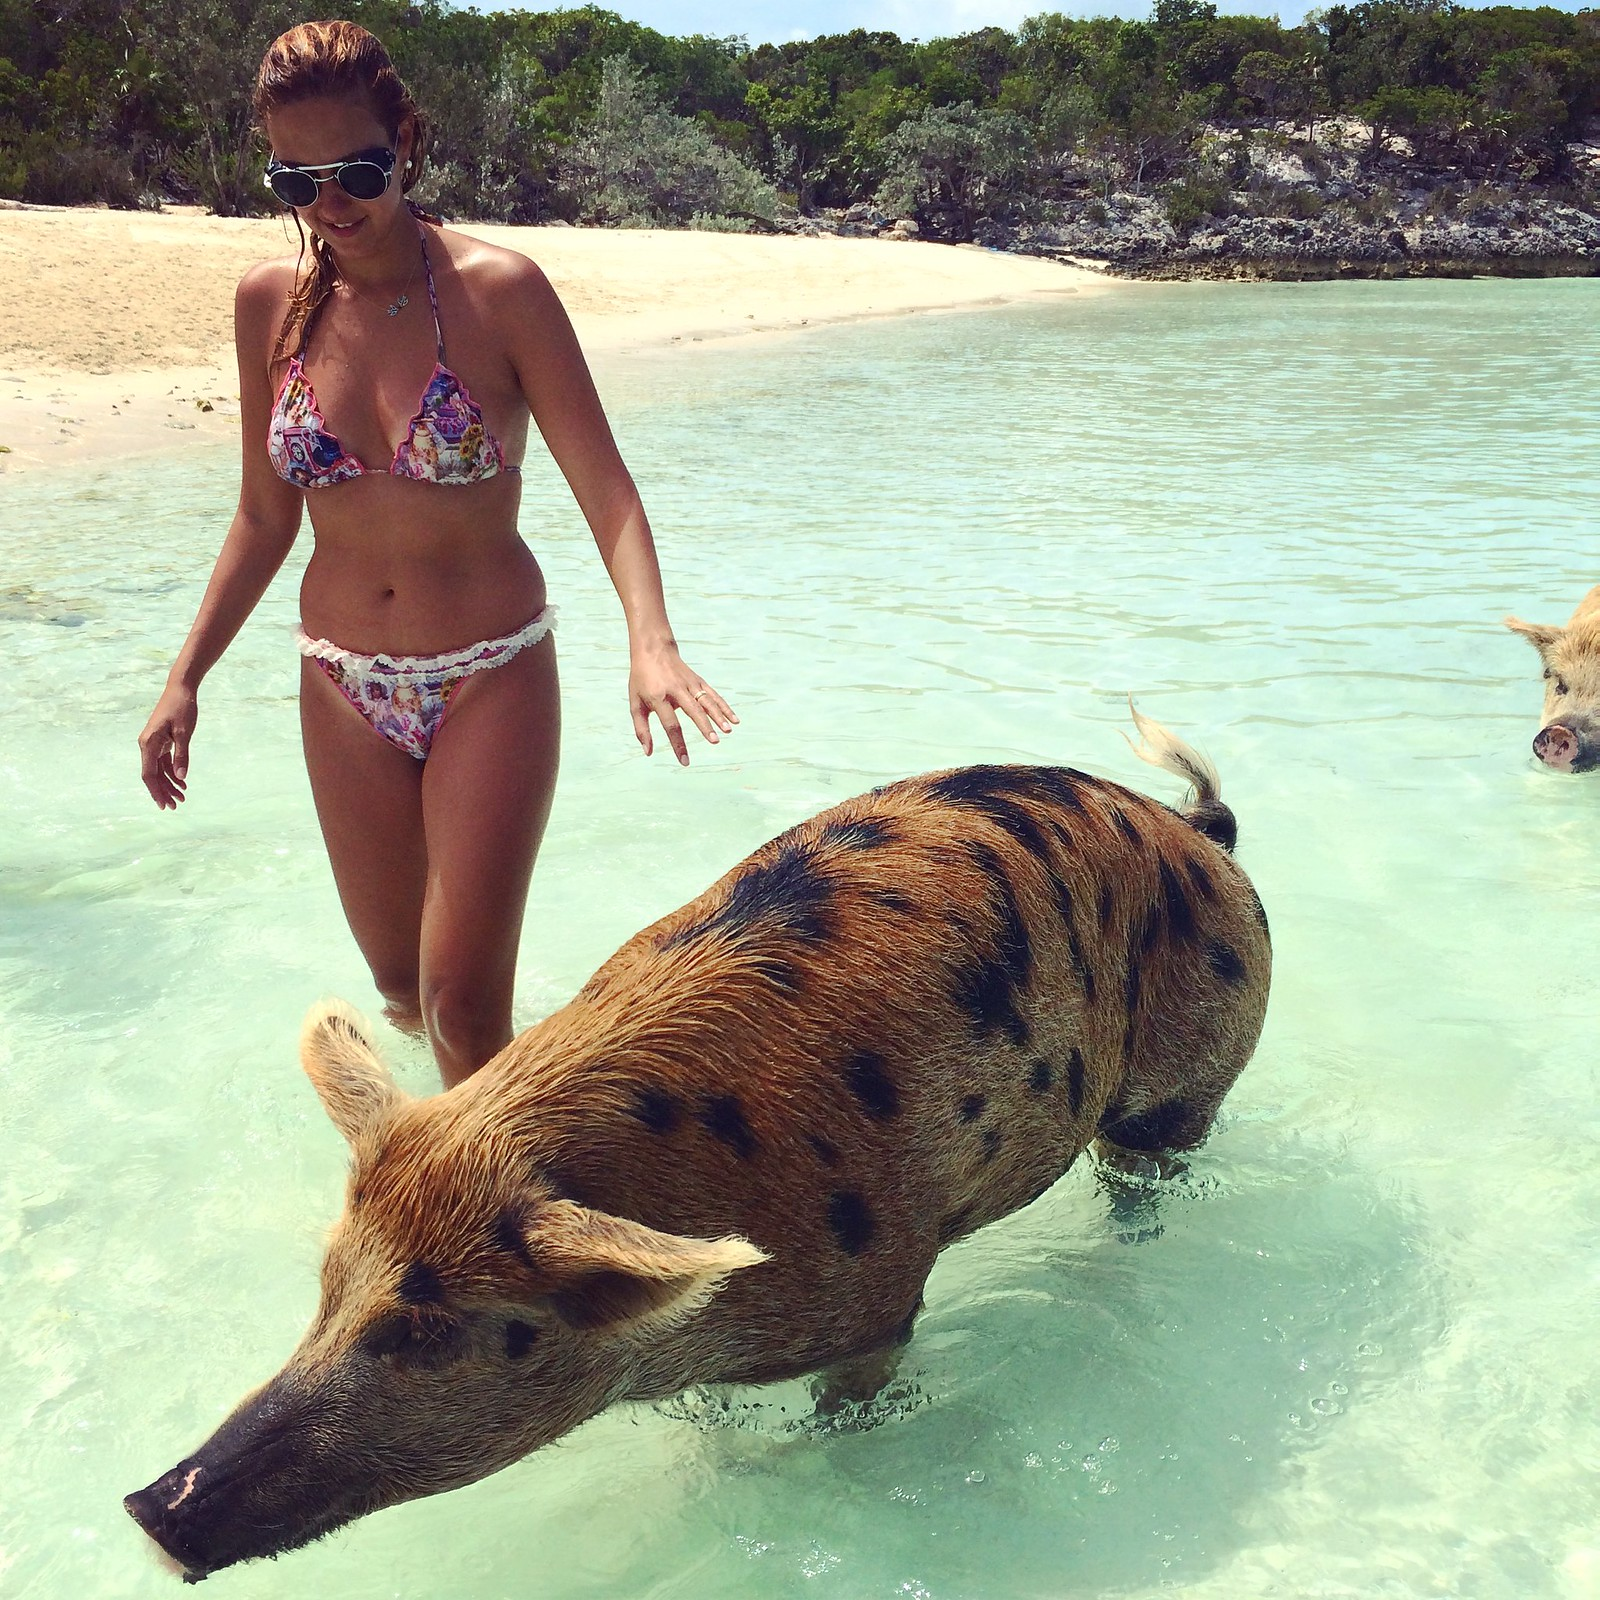 pig beach also known as pig island major cay and officially big major ...